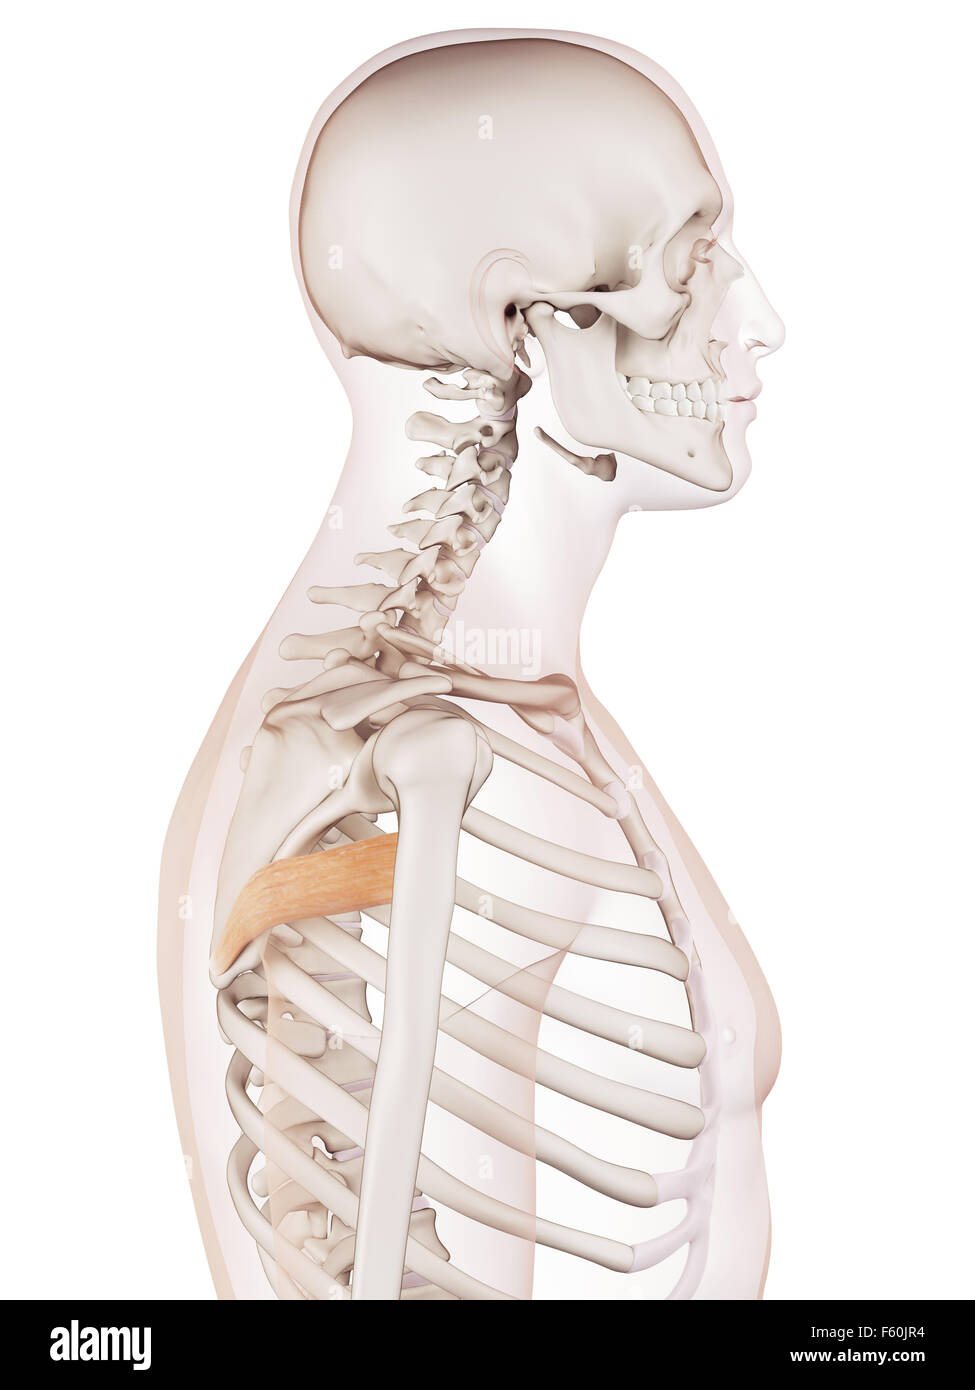 Teres Major Muscle Stock Photos Teres Major Muscle Stock Images